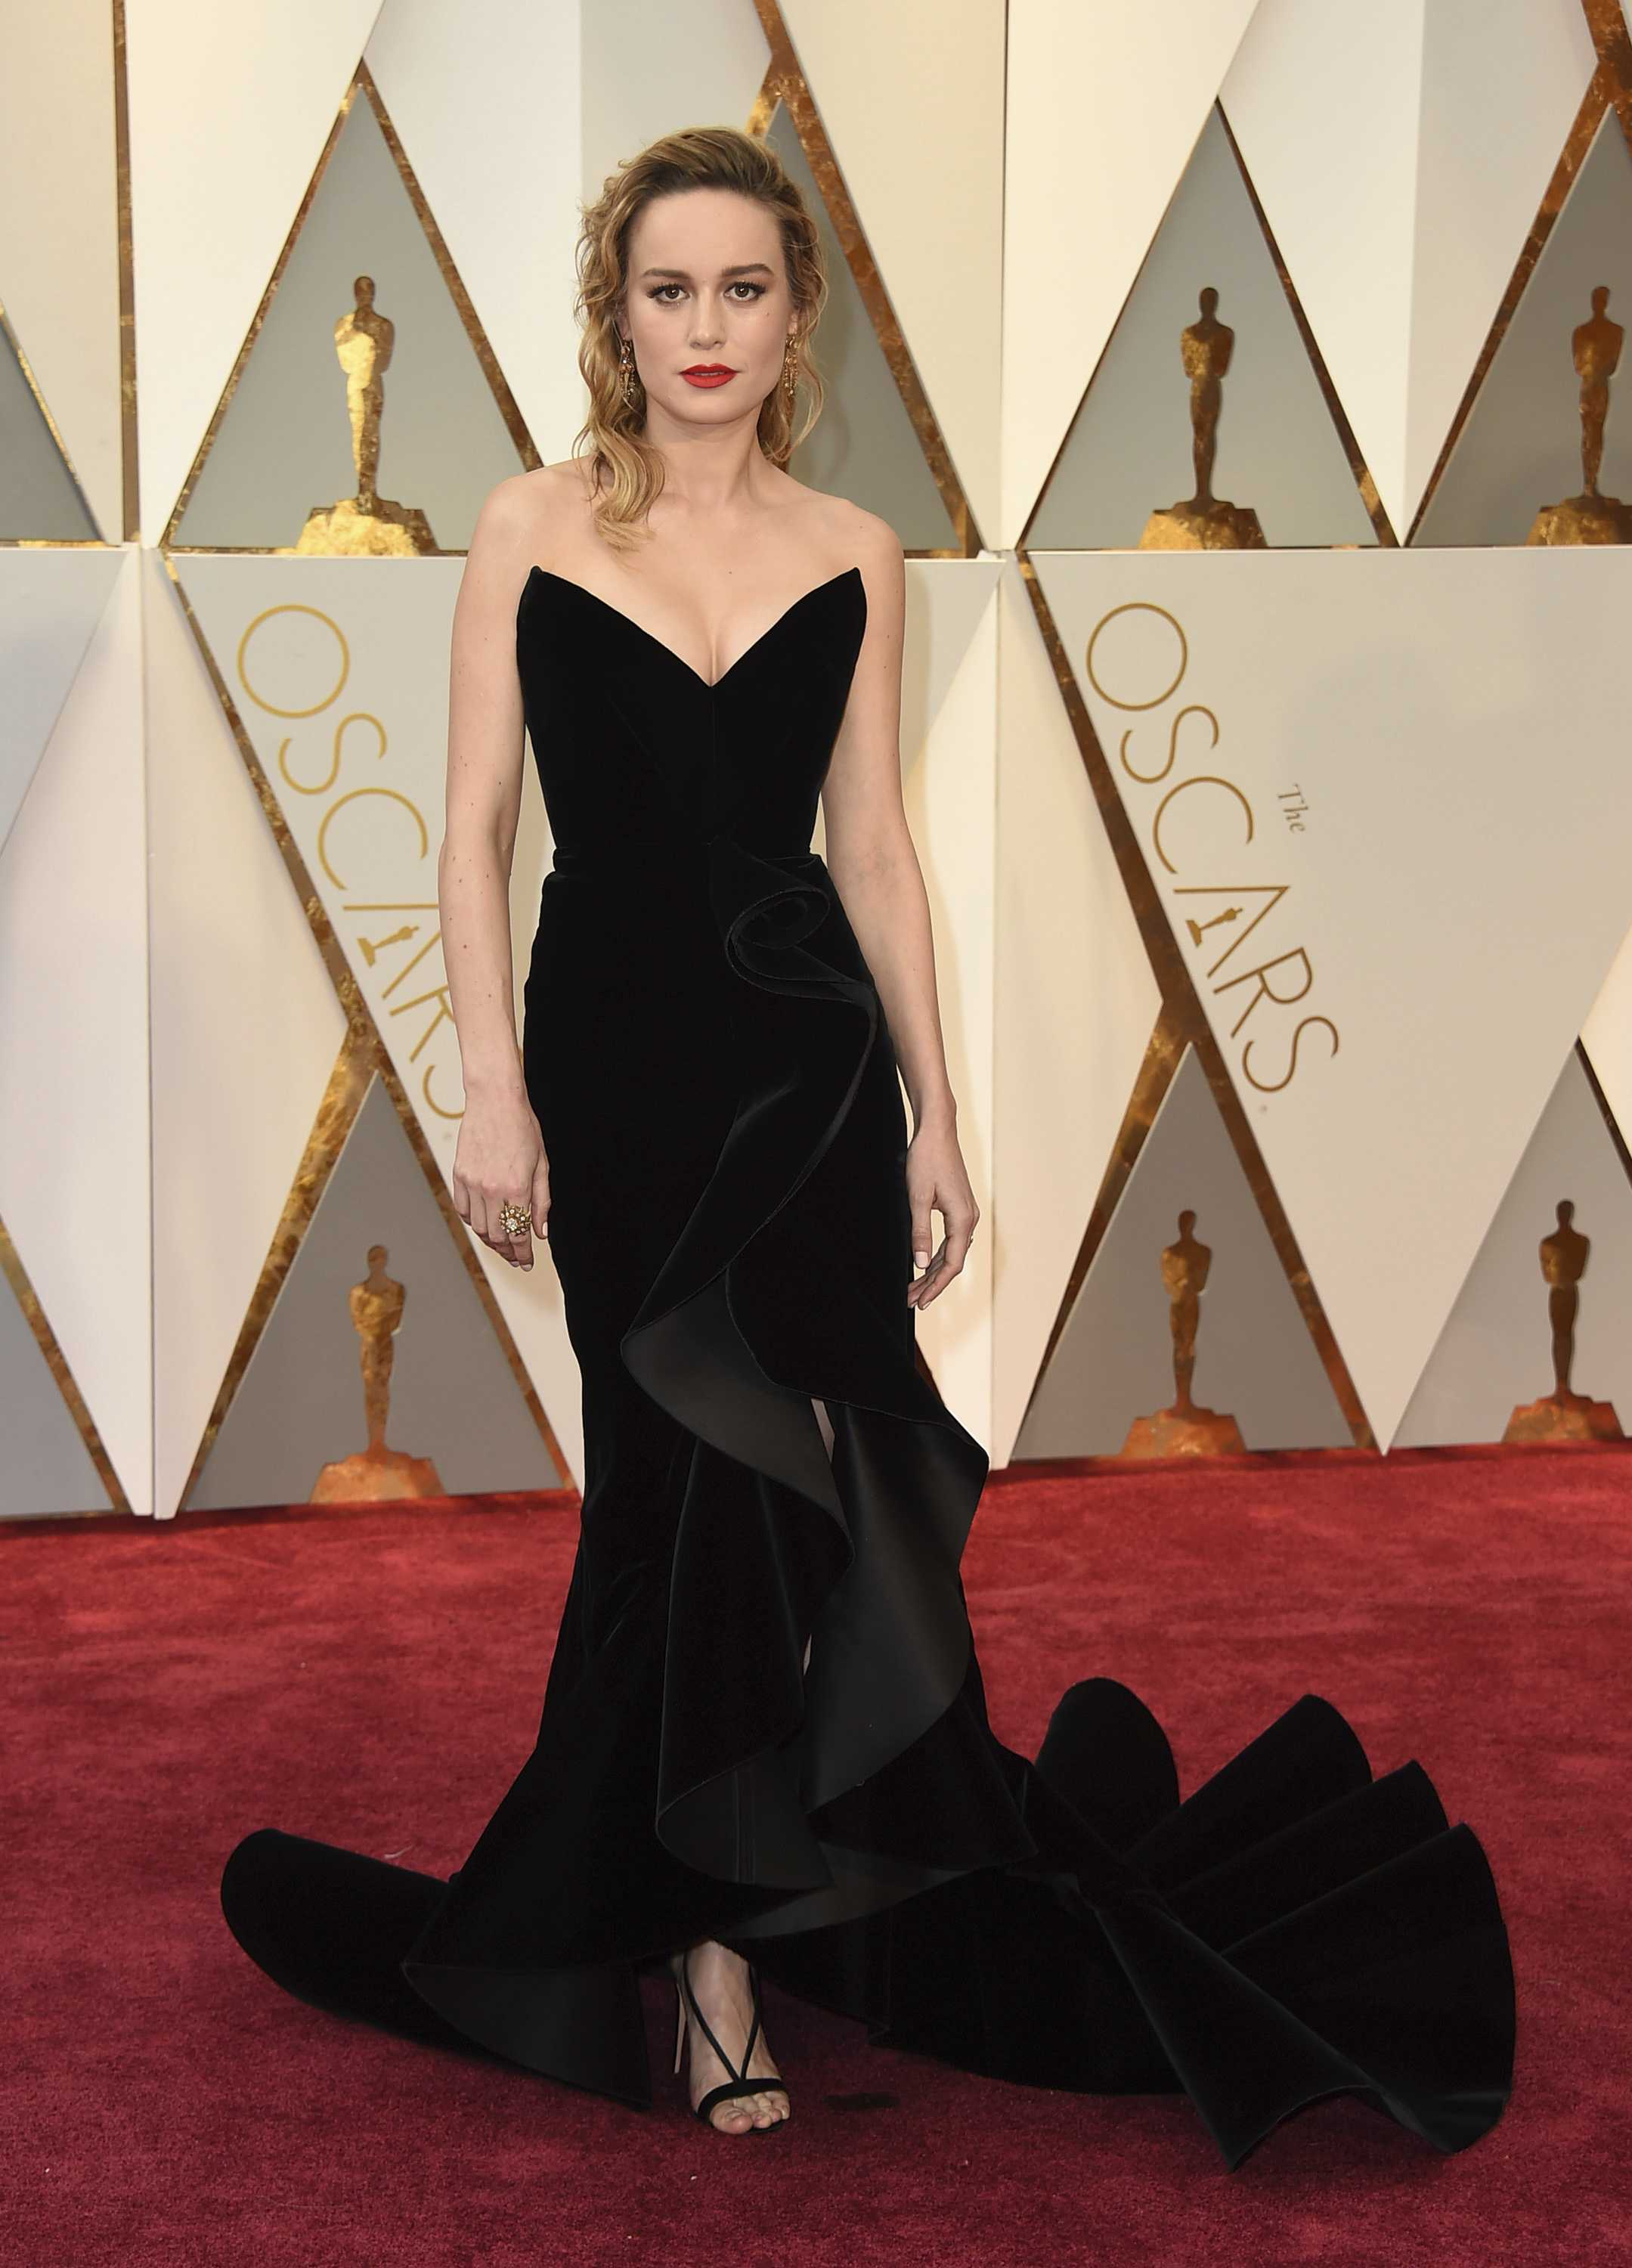 89th Academy Awards Red Carpet